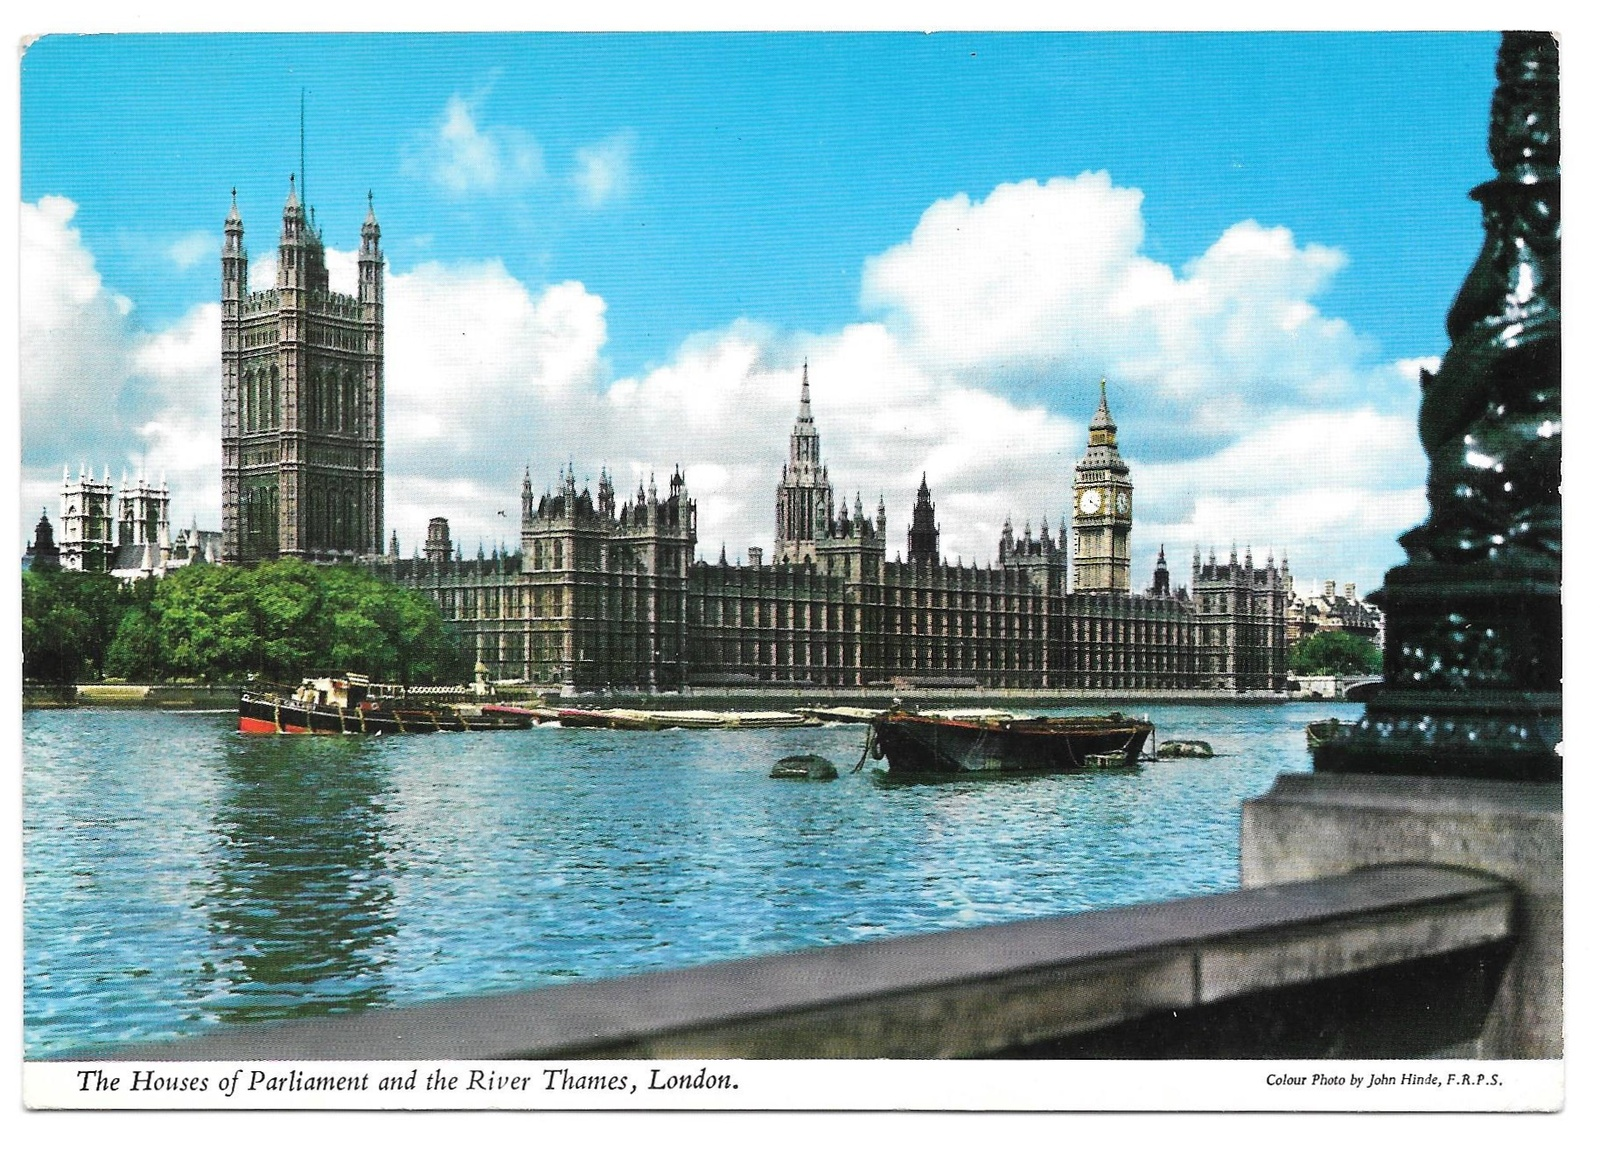 96 br 3850 315 uk london houses of parliament river thames